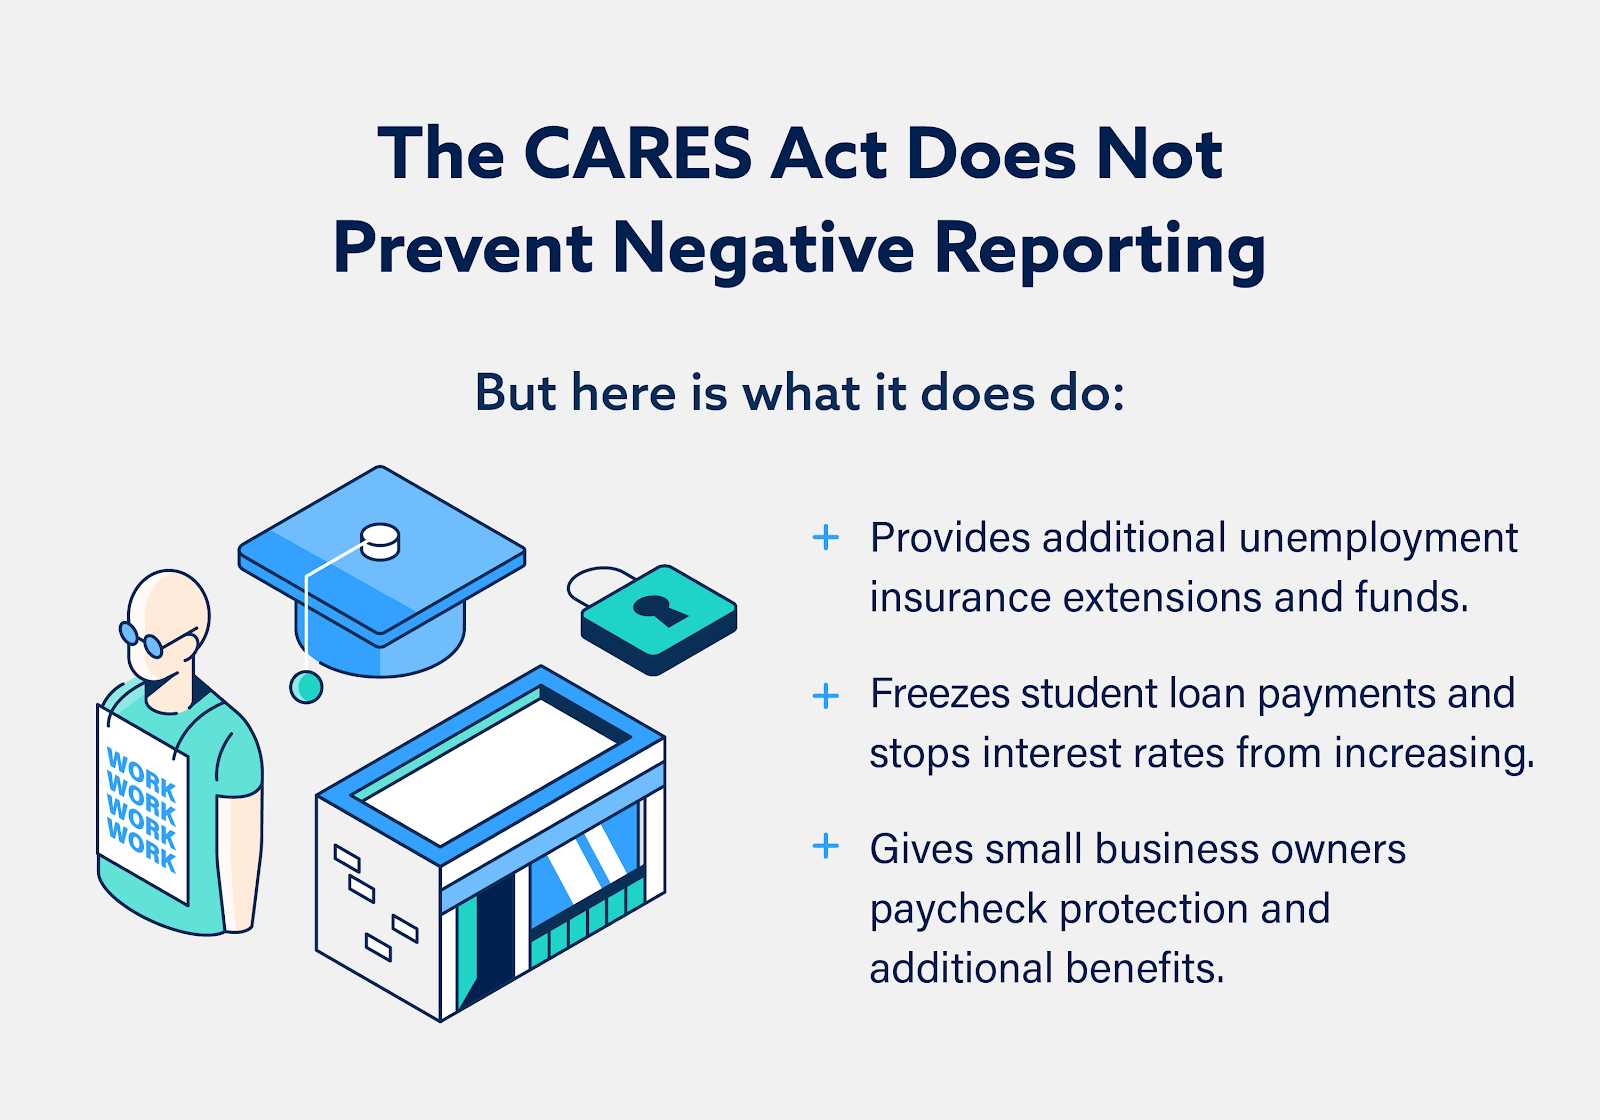 Graphic: What the CARES Act Does